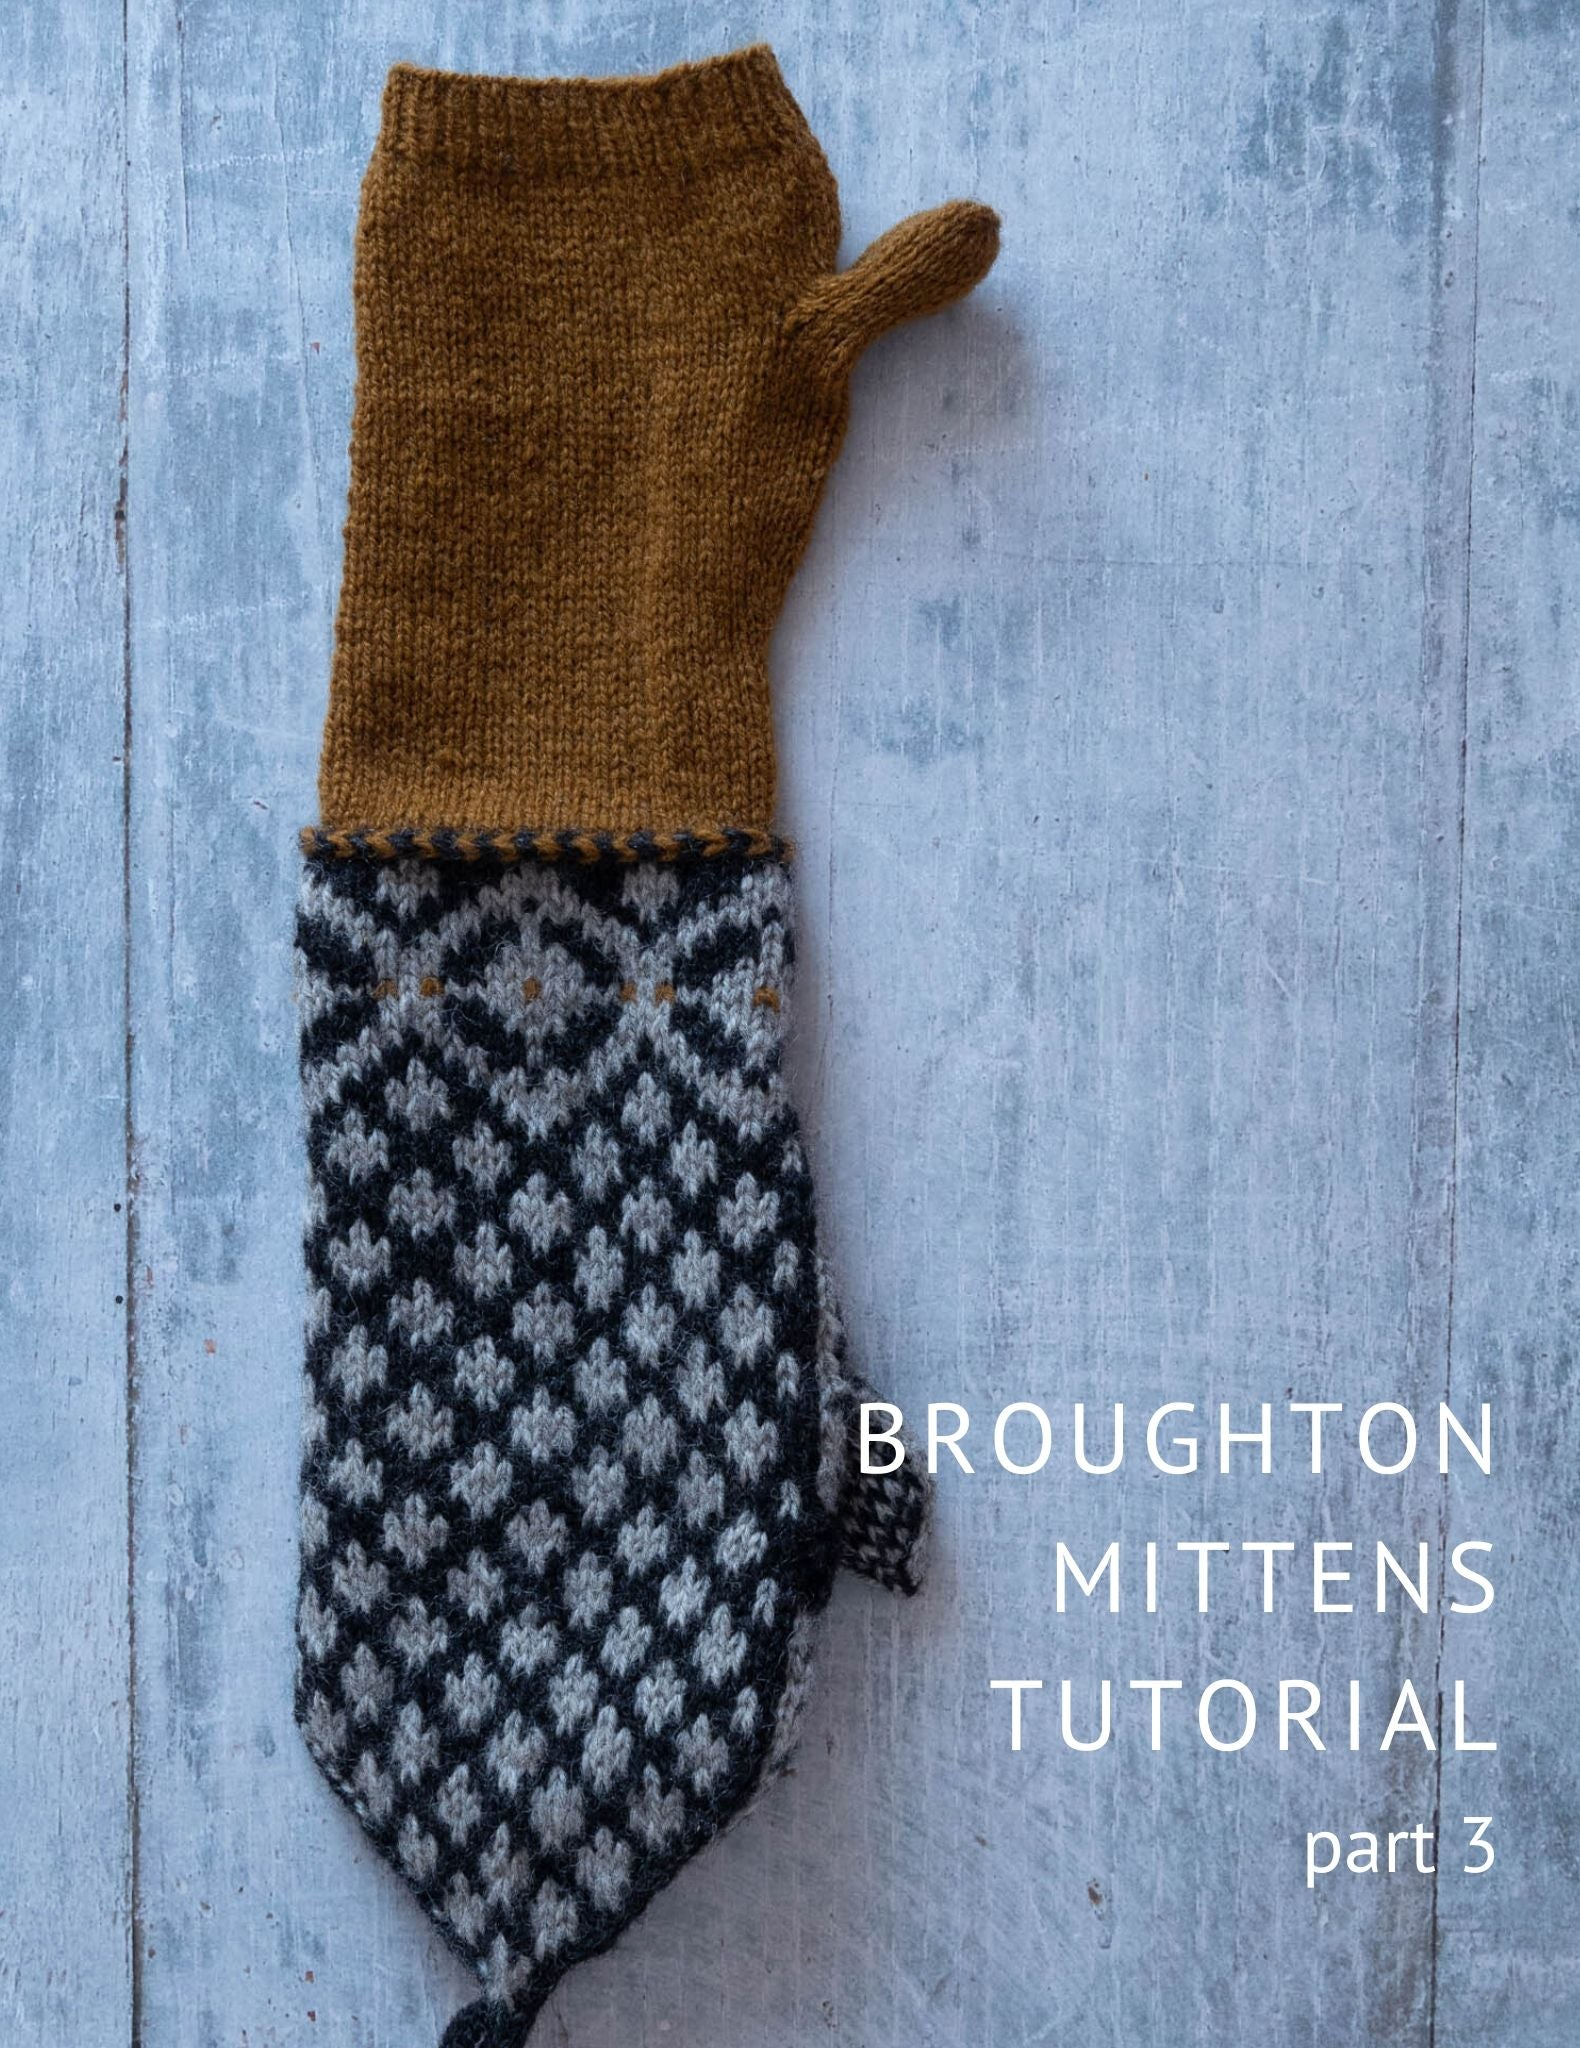 Broughton mittens tutorial part 3